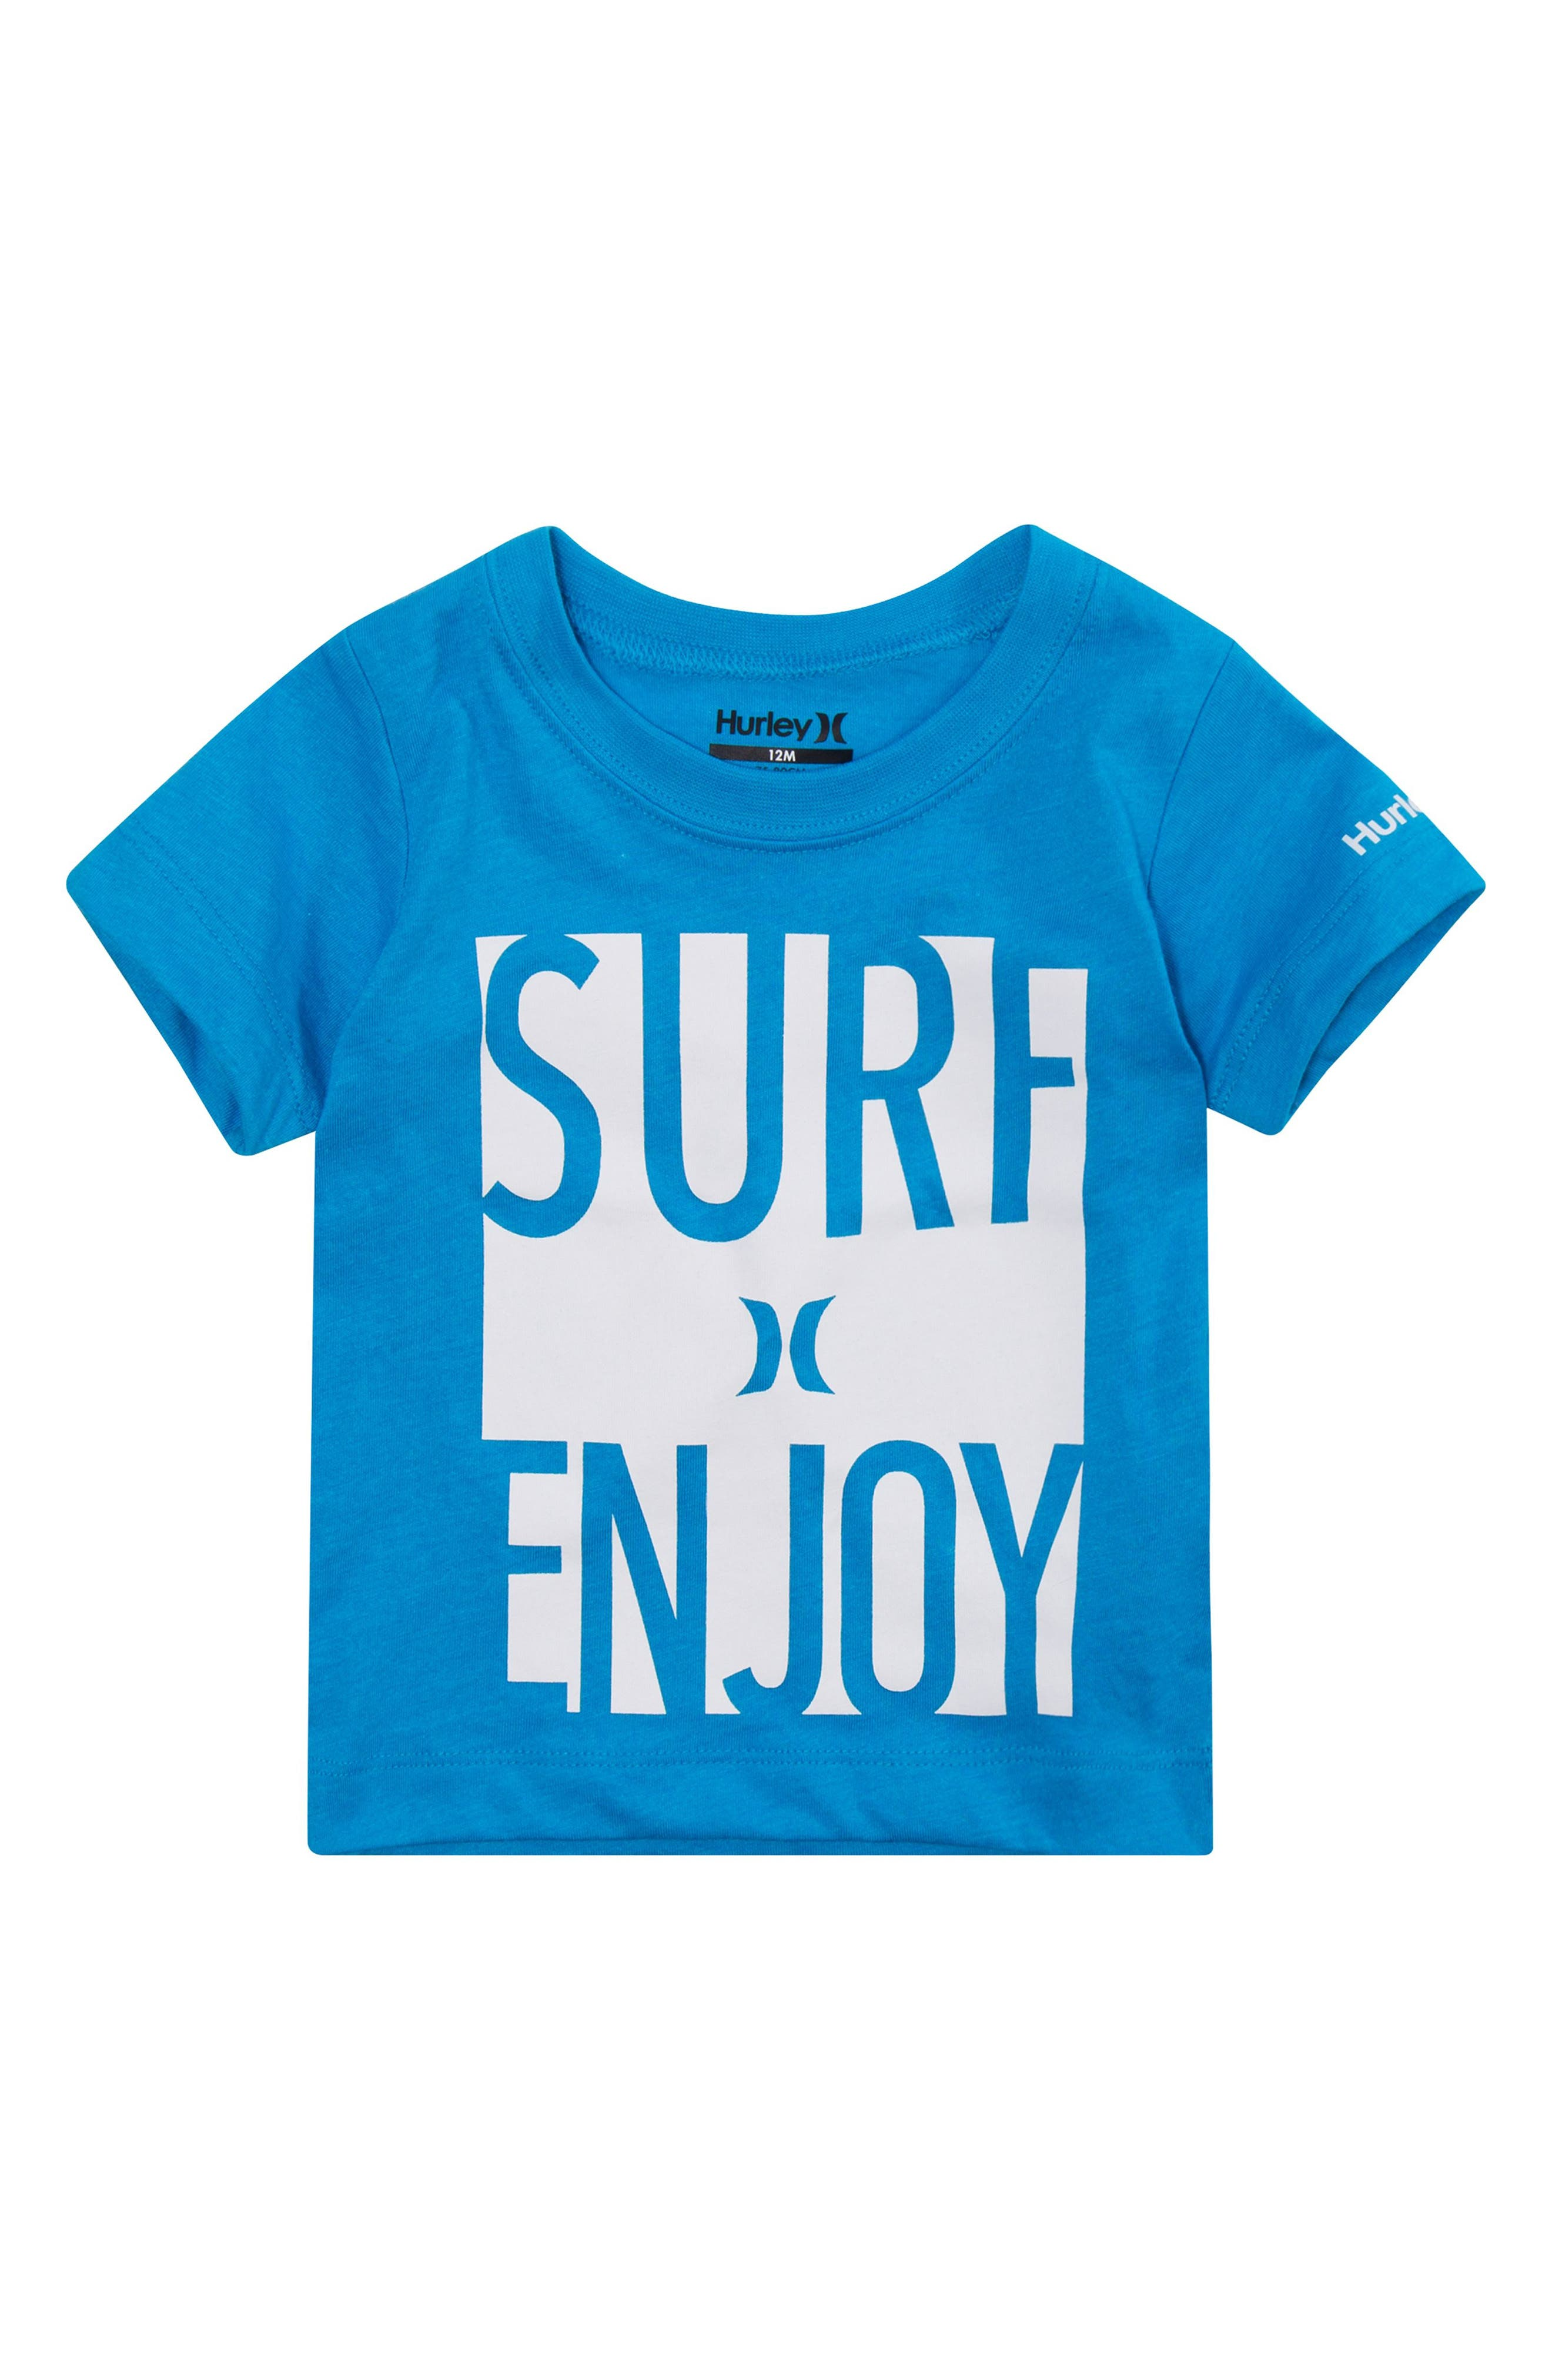 Surf & Enjoy Graphic T-Shirt,                             Main thumbnail 1, color,                             400